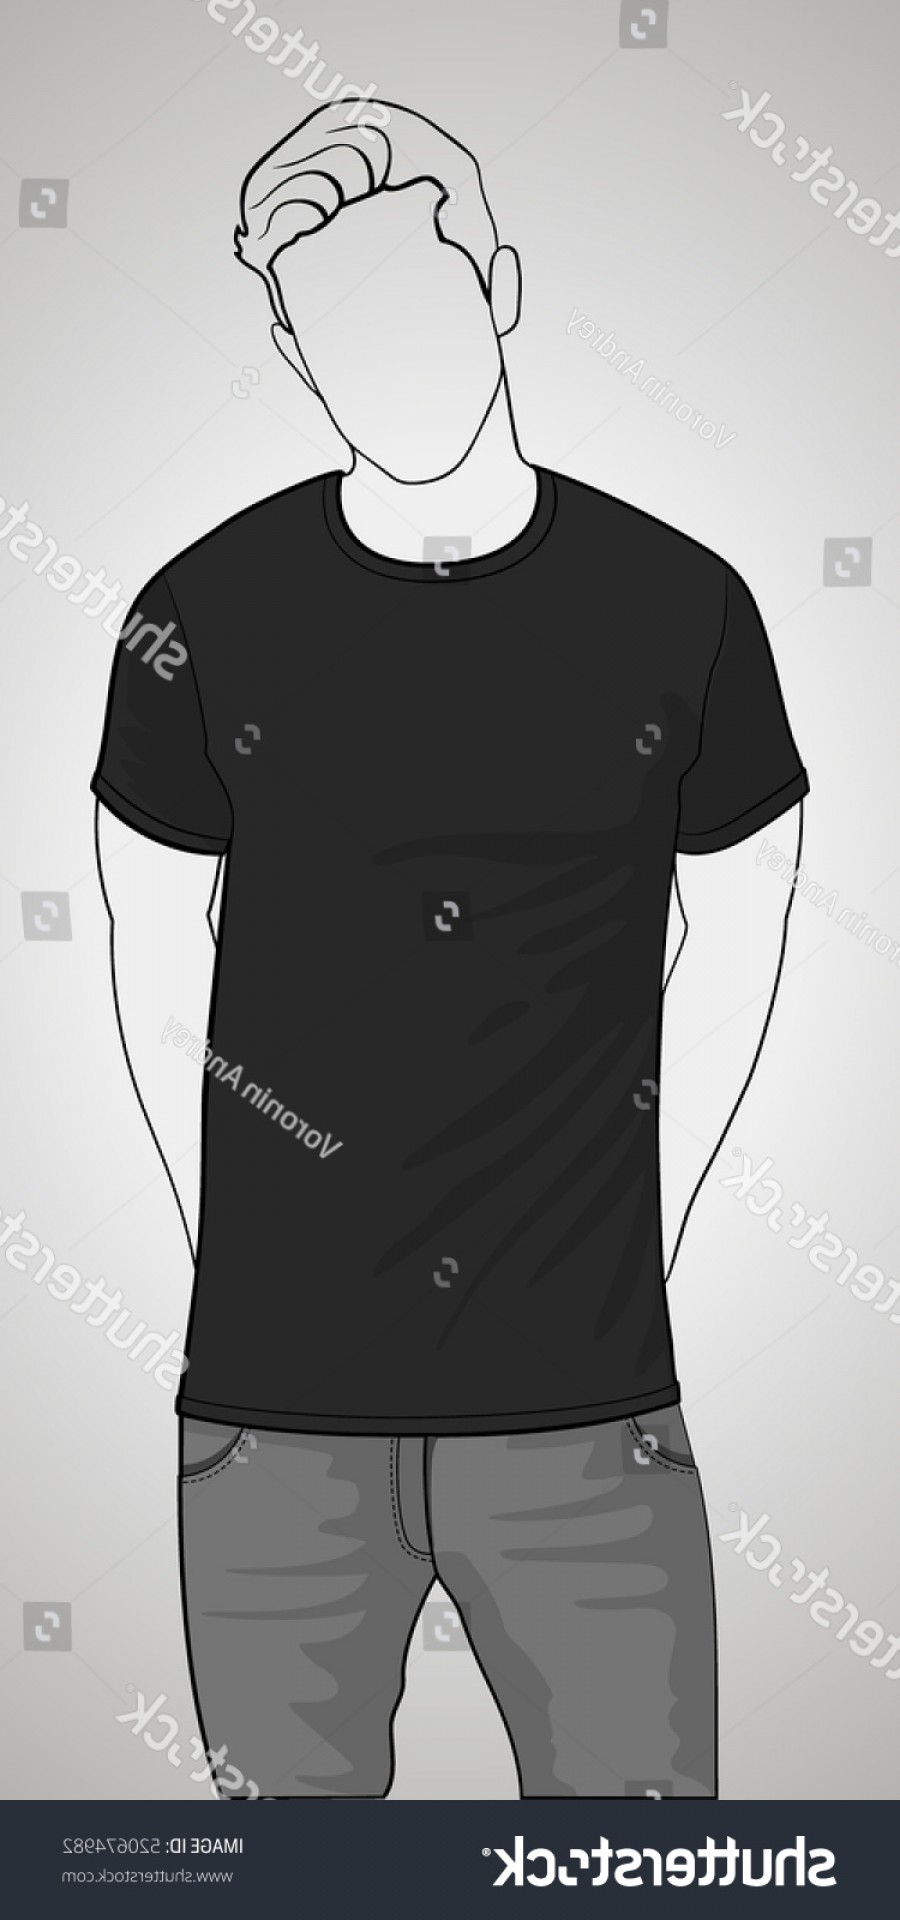 Vector Pocket Silhouette Shirt: Tshirt Template Front View On Man